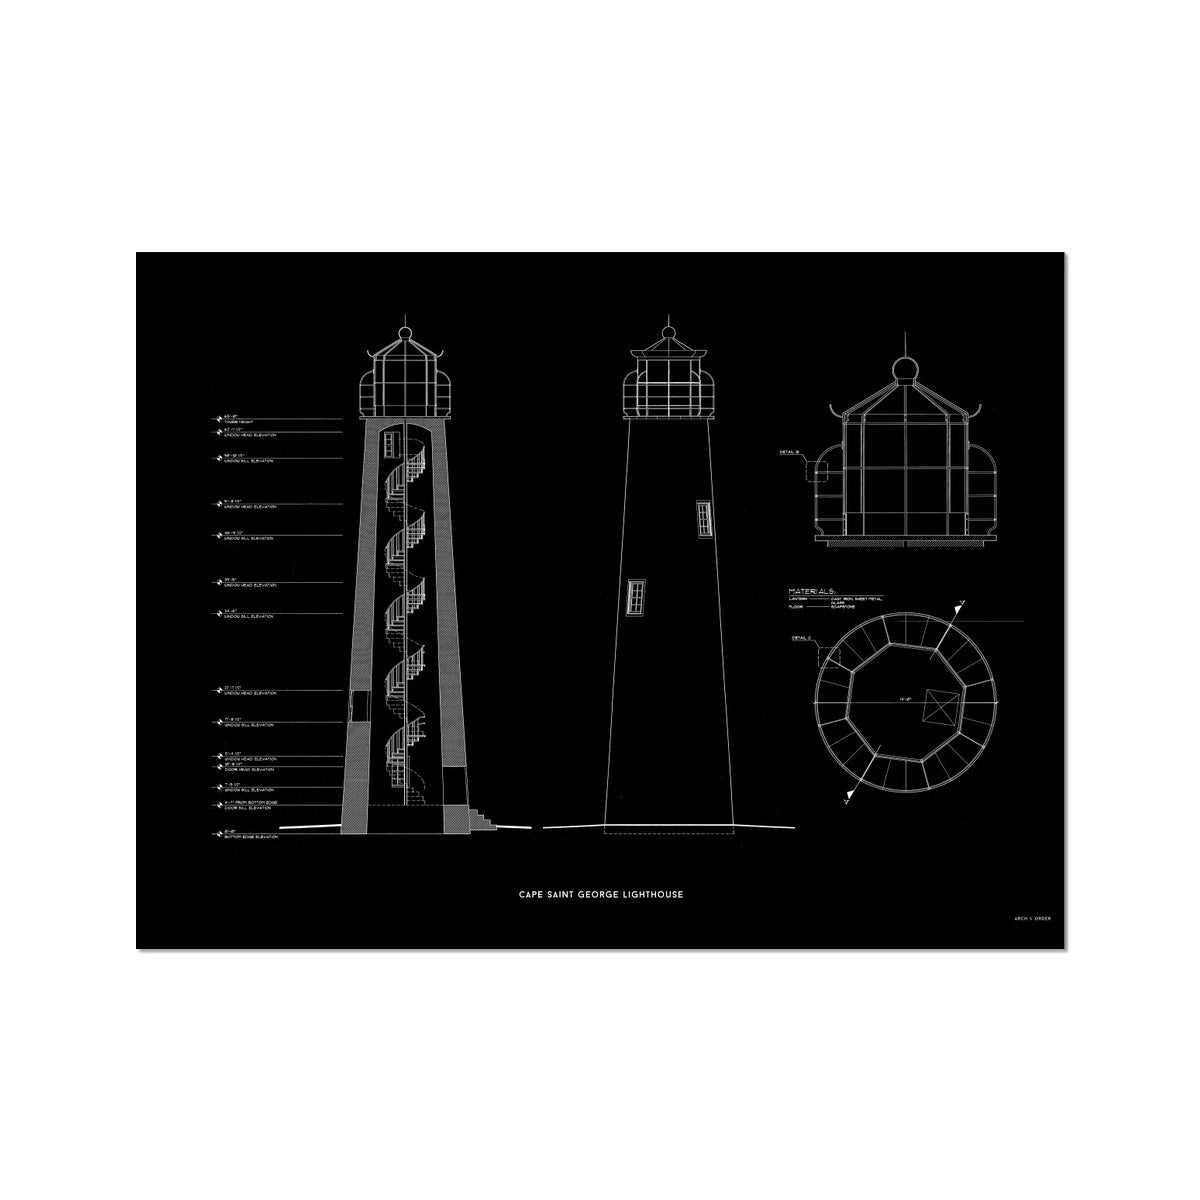 Cape Saint George Lighthouse - Southeast Elevation and Cross Section - Black - German Etching Print